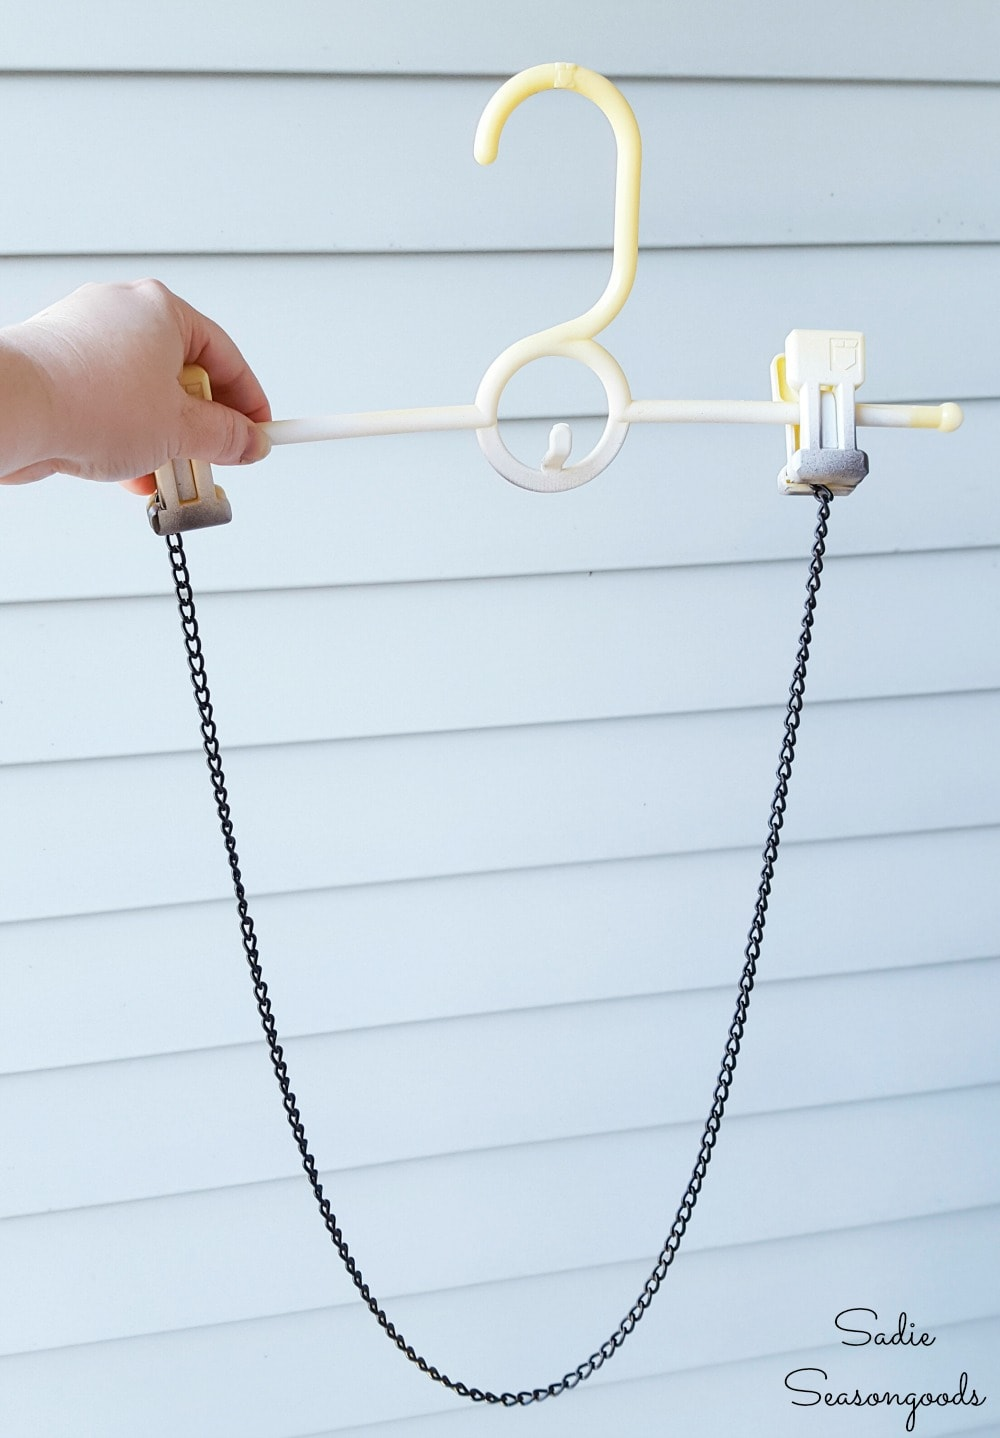 How to spray paint chain by using a clip hanger